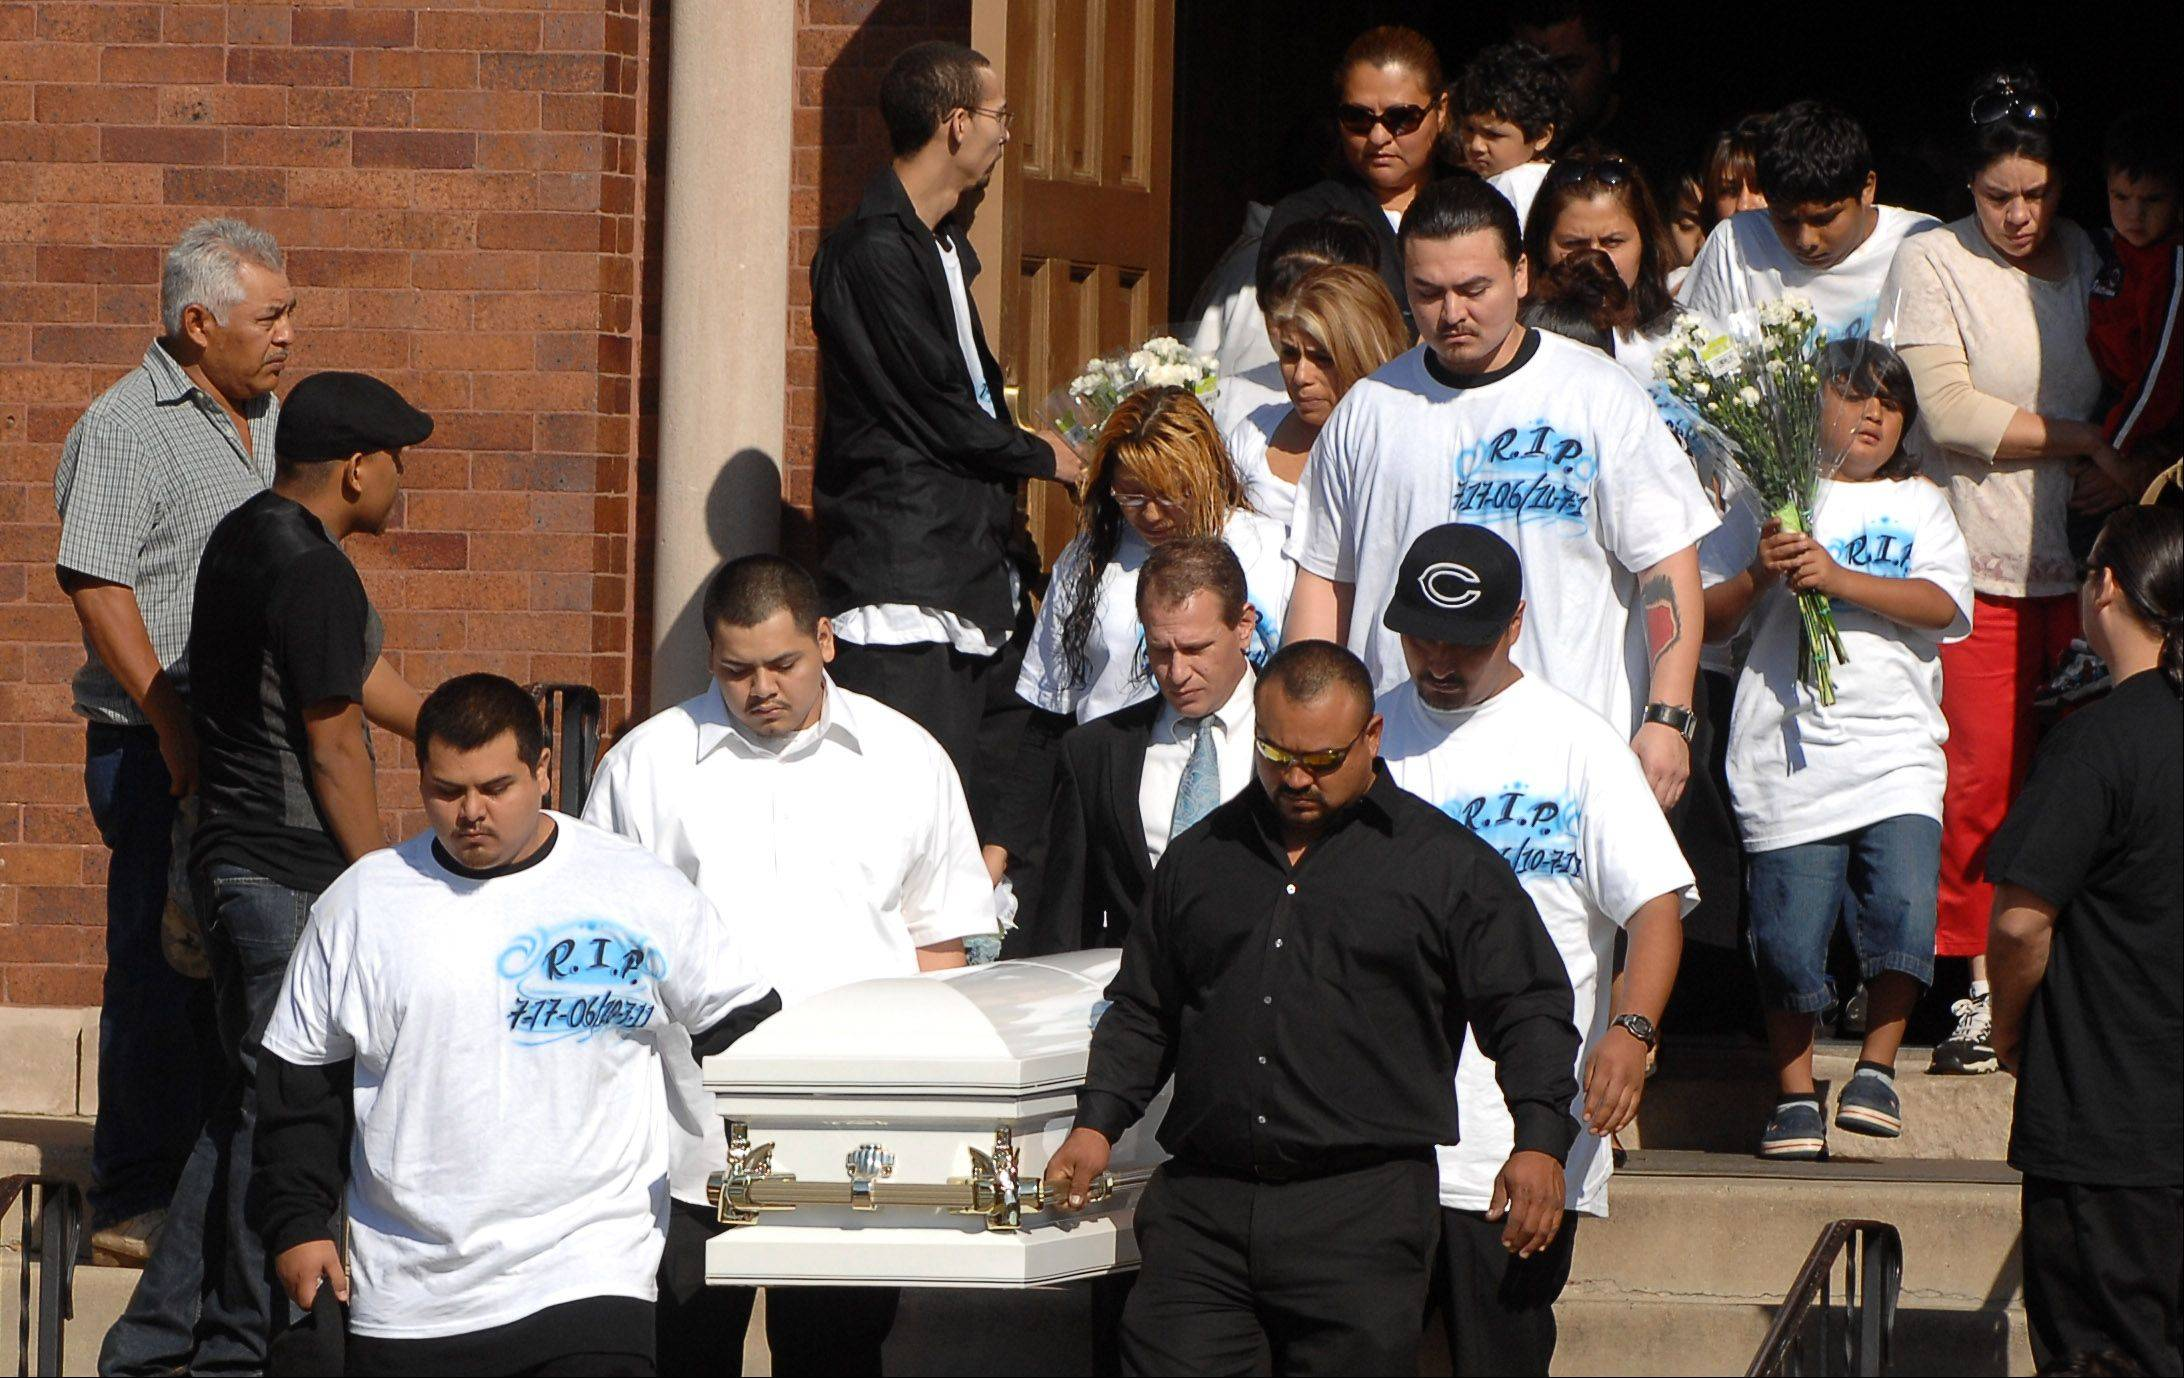 Pallbearers carry the casket following the funeral of 5-year-old Eric M. Galarza Jr. at St. Joseph Catholic Church Wednesday. The boy was killed Friday night in a gang-related shooting in Elgin. His parents Eric and Denisse are following the casket.